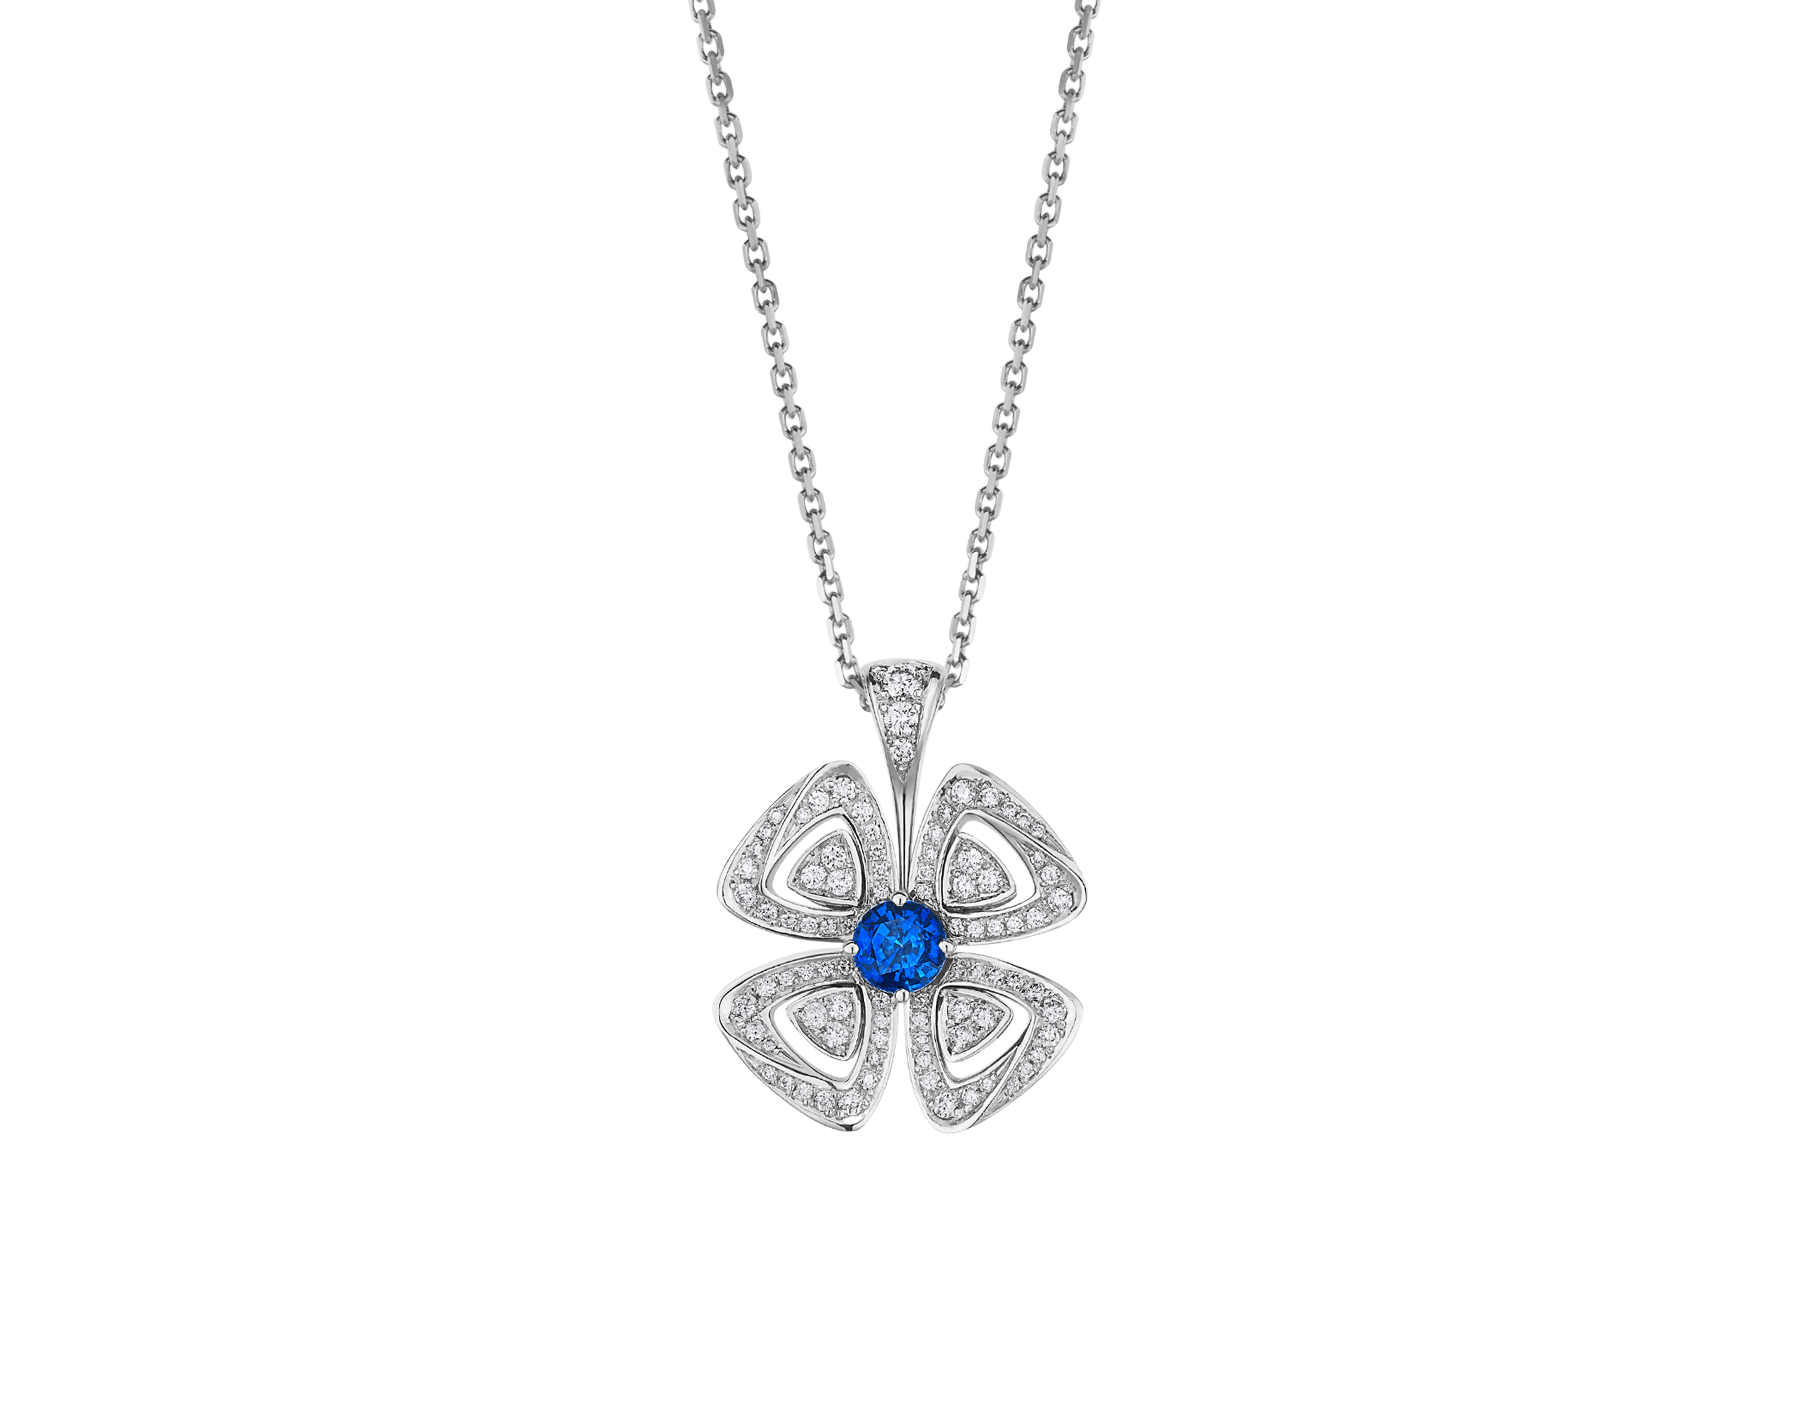 Fiorever 18 kt white gold pendant necklace set with a central brilliant-cut sapphire (0.43 ct) and pavé diamonds (0.31 ct) 358426 image 1